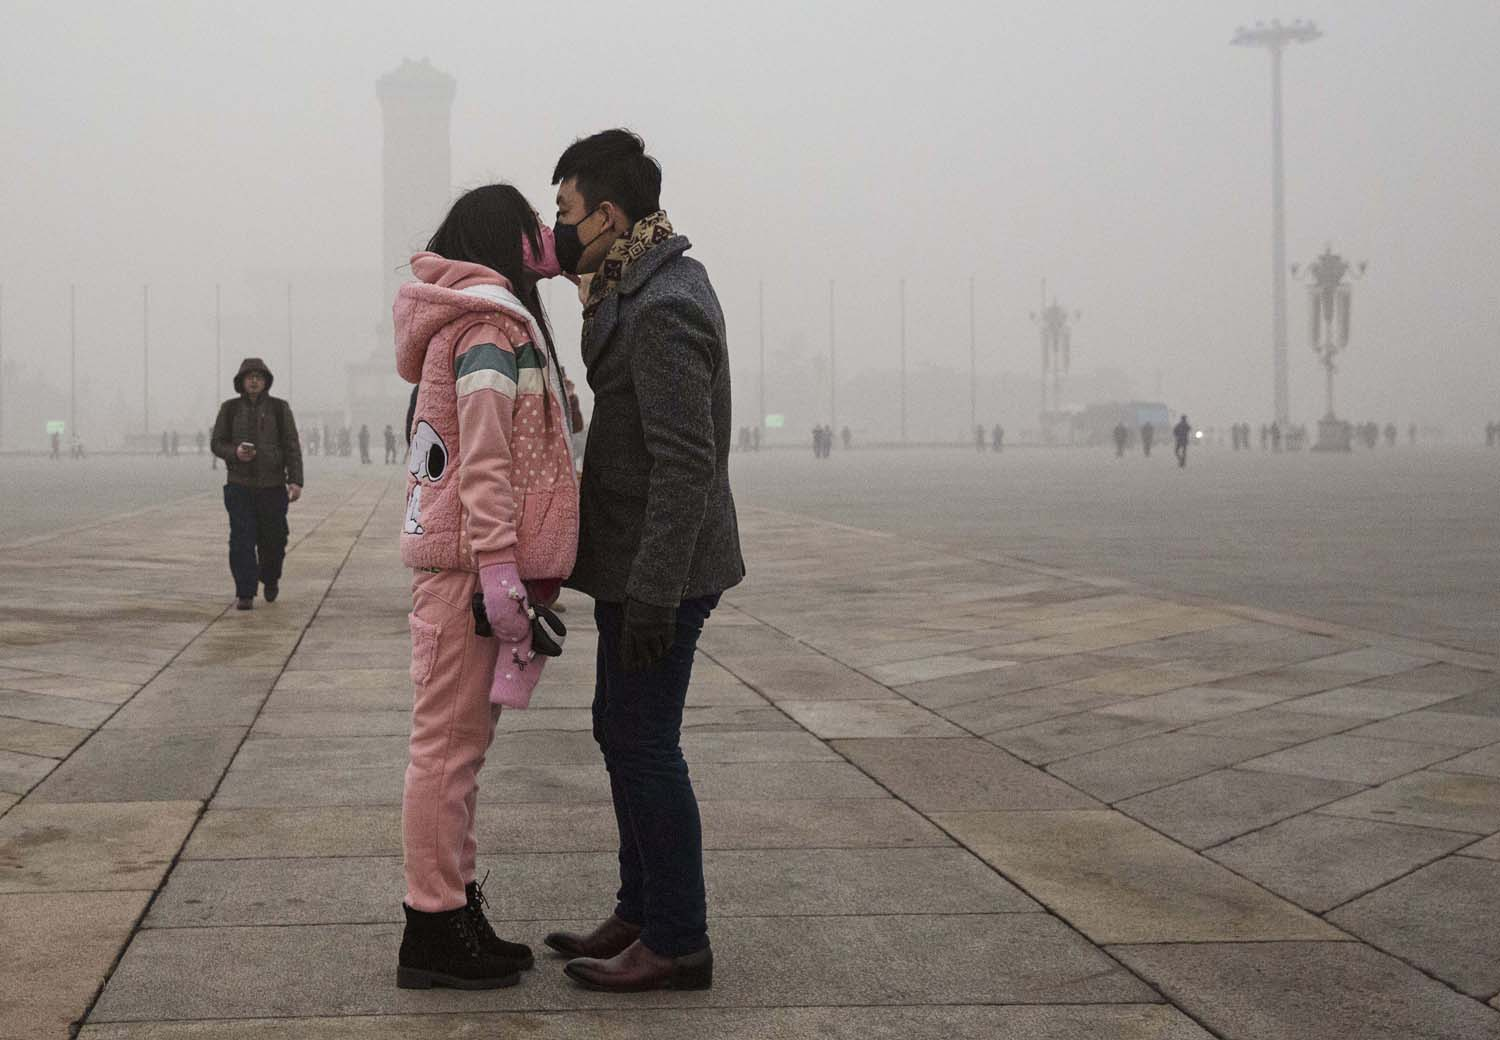 Curiosamente, en este beso los labios no se tocan, debido a la polución. La foto fue tomada en Pekín, durante el reciente pico de contaminación que puso en alerta a la capital de China y a otras urbes alrededor. Foto: KEVIN FRAYER/GETTY IMAGES